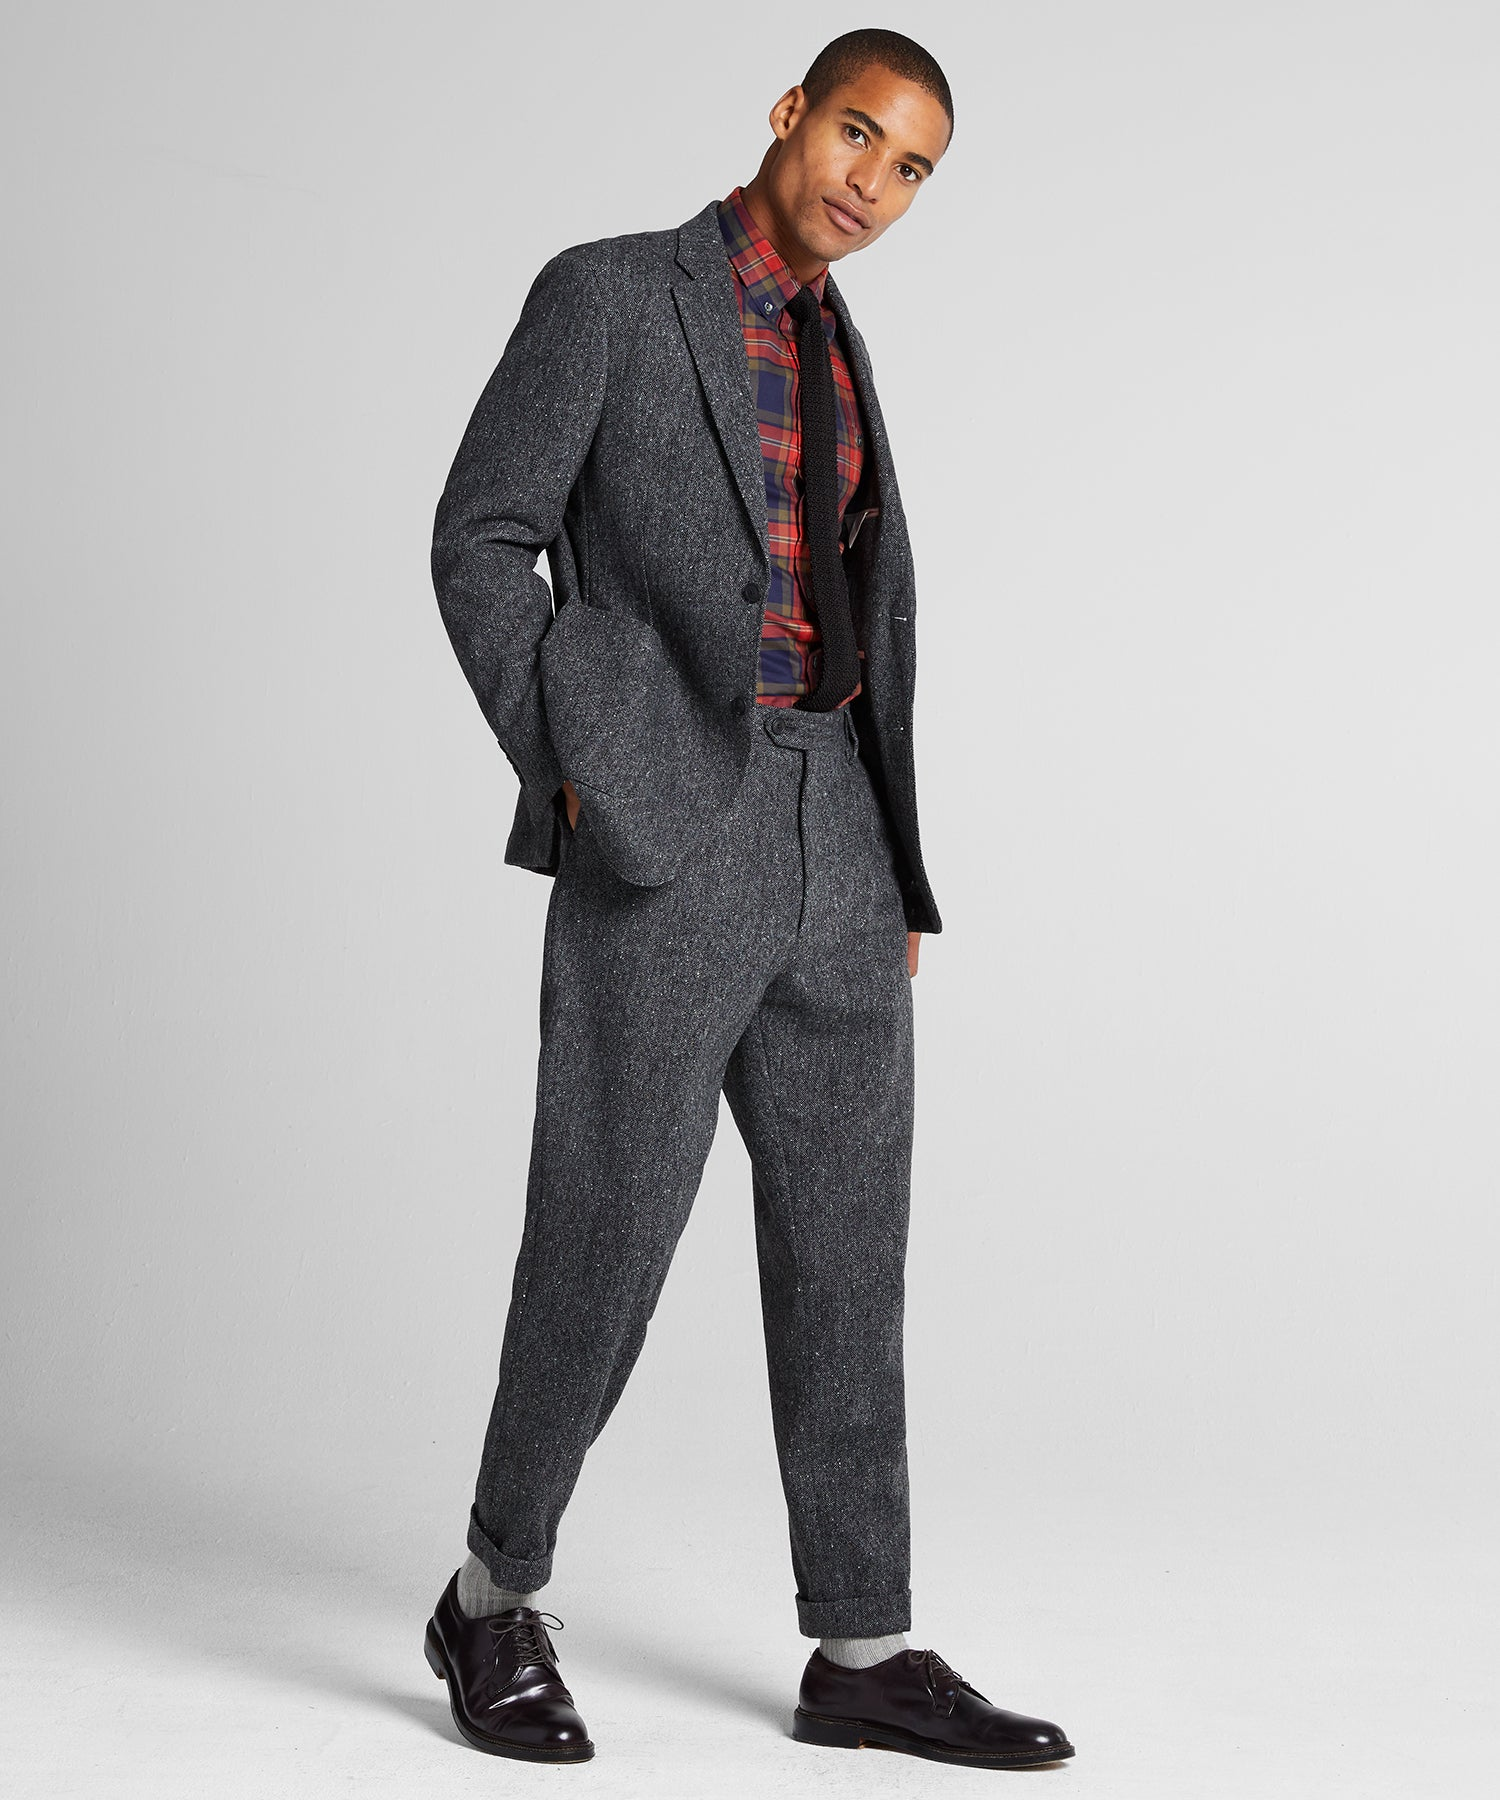 Donegal Wool Madison Traveler Suit in Charcoal